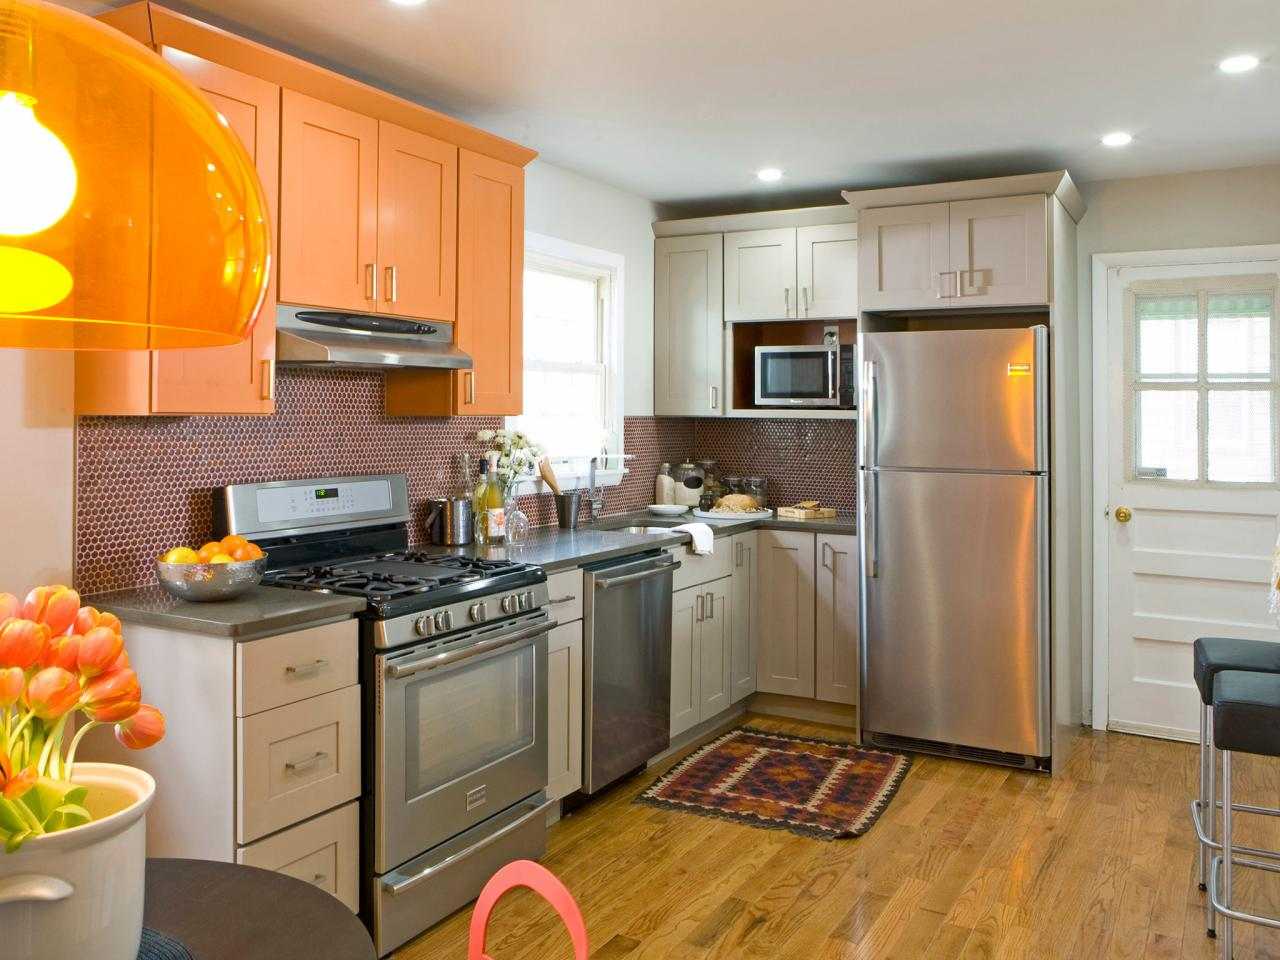 Image of: Pictures of Painted Kitchen Cabinets